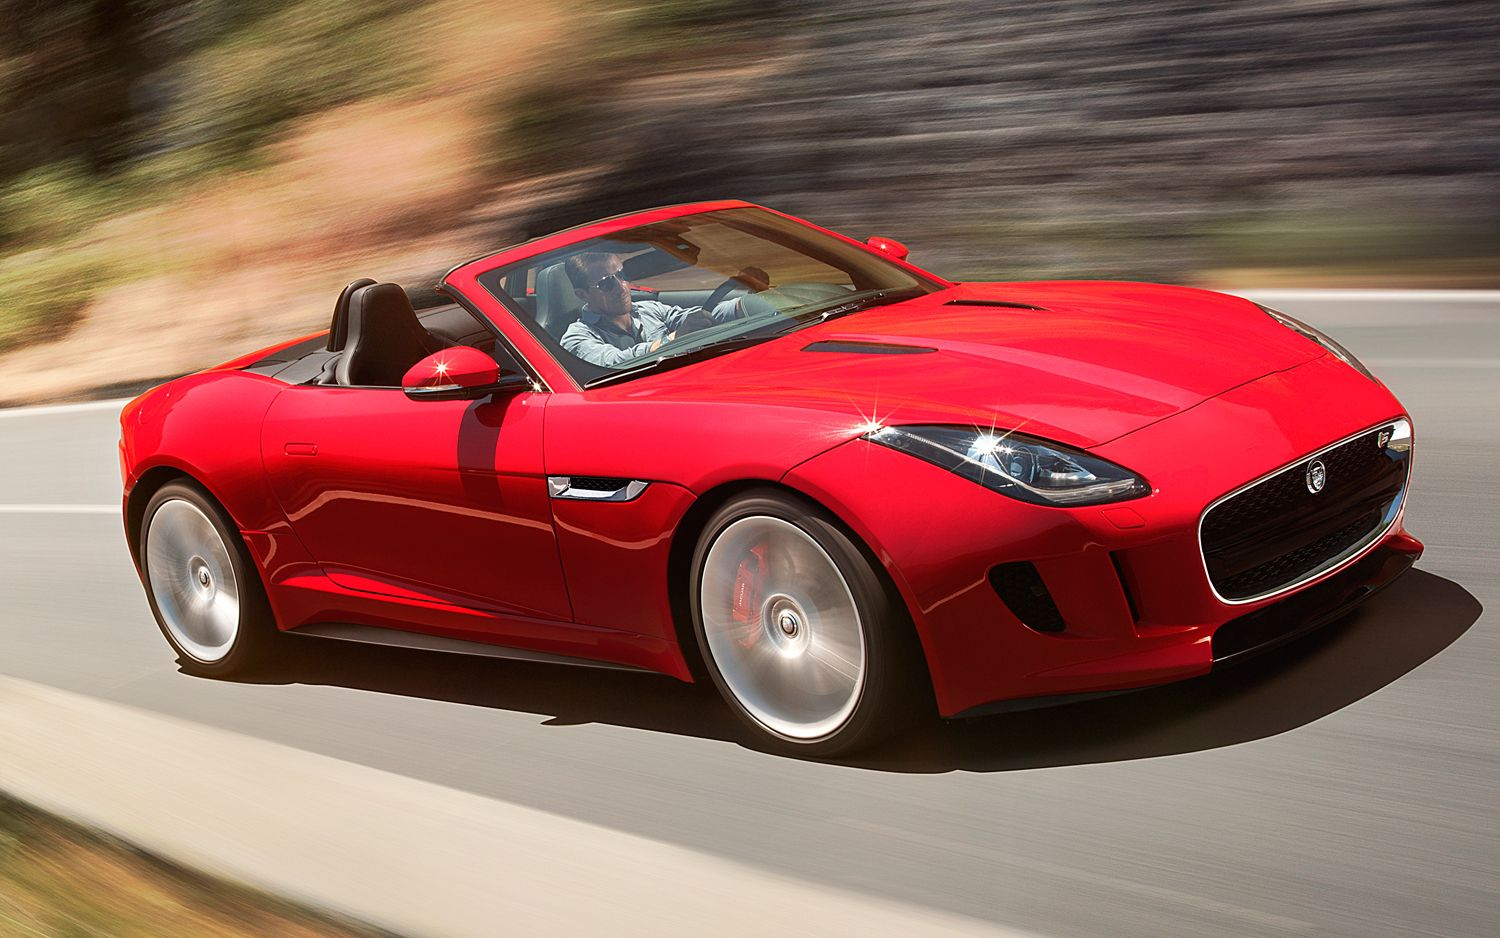 cool car wallpapers 2014 jaguar f type. Black Bedroom Furniture Sets. Home Design Ideas